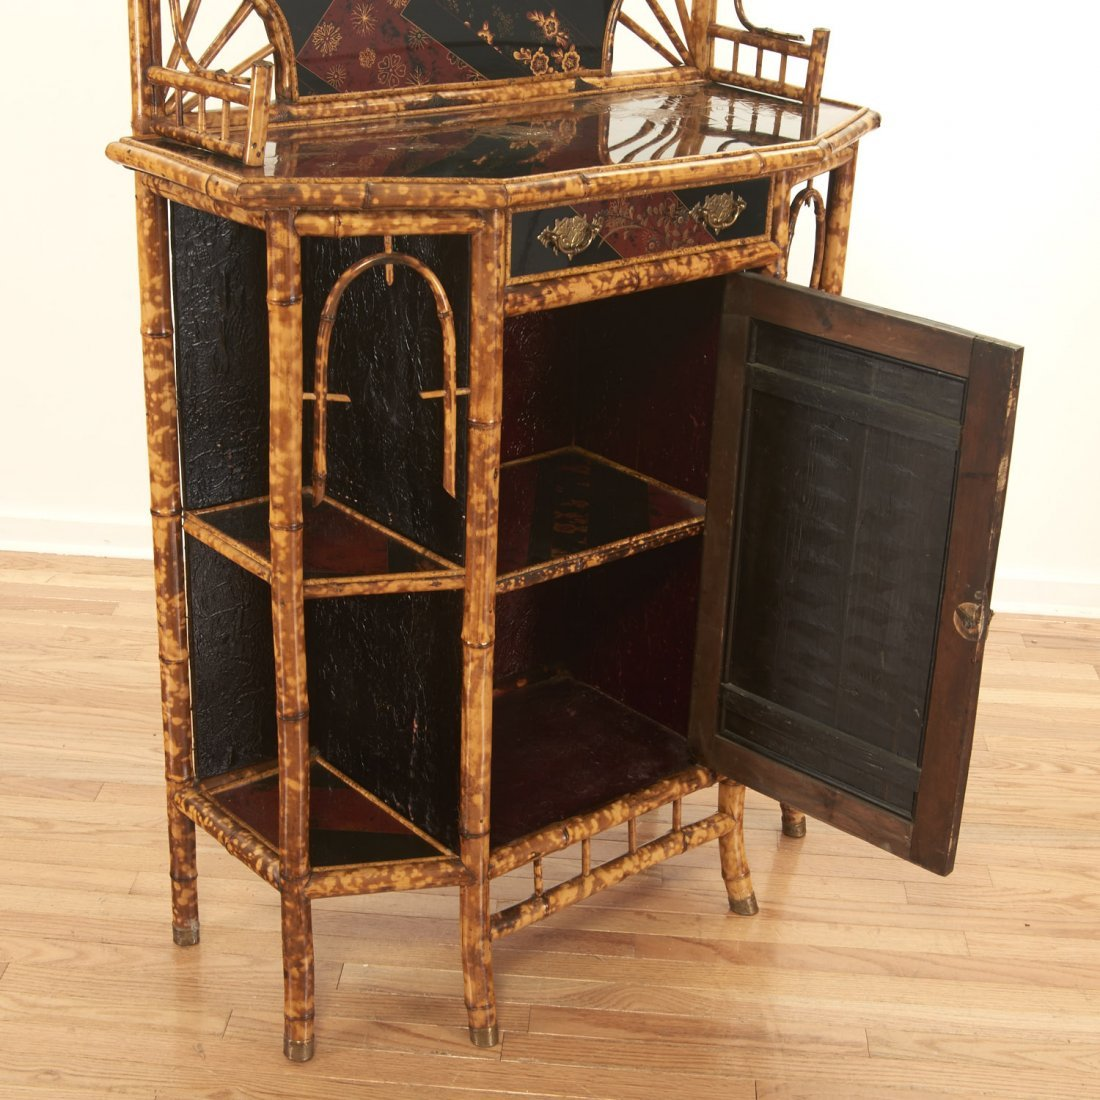 Victorian style chinoiserie lacquer etagere - 3